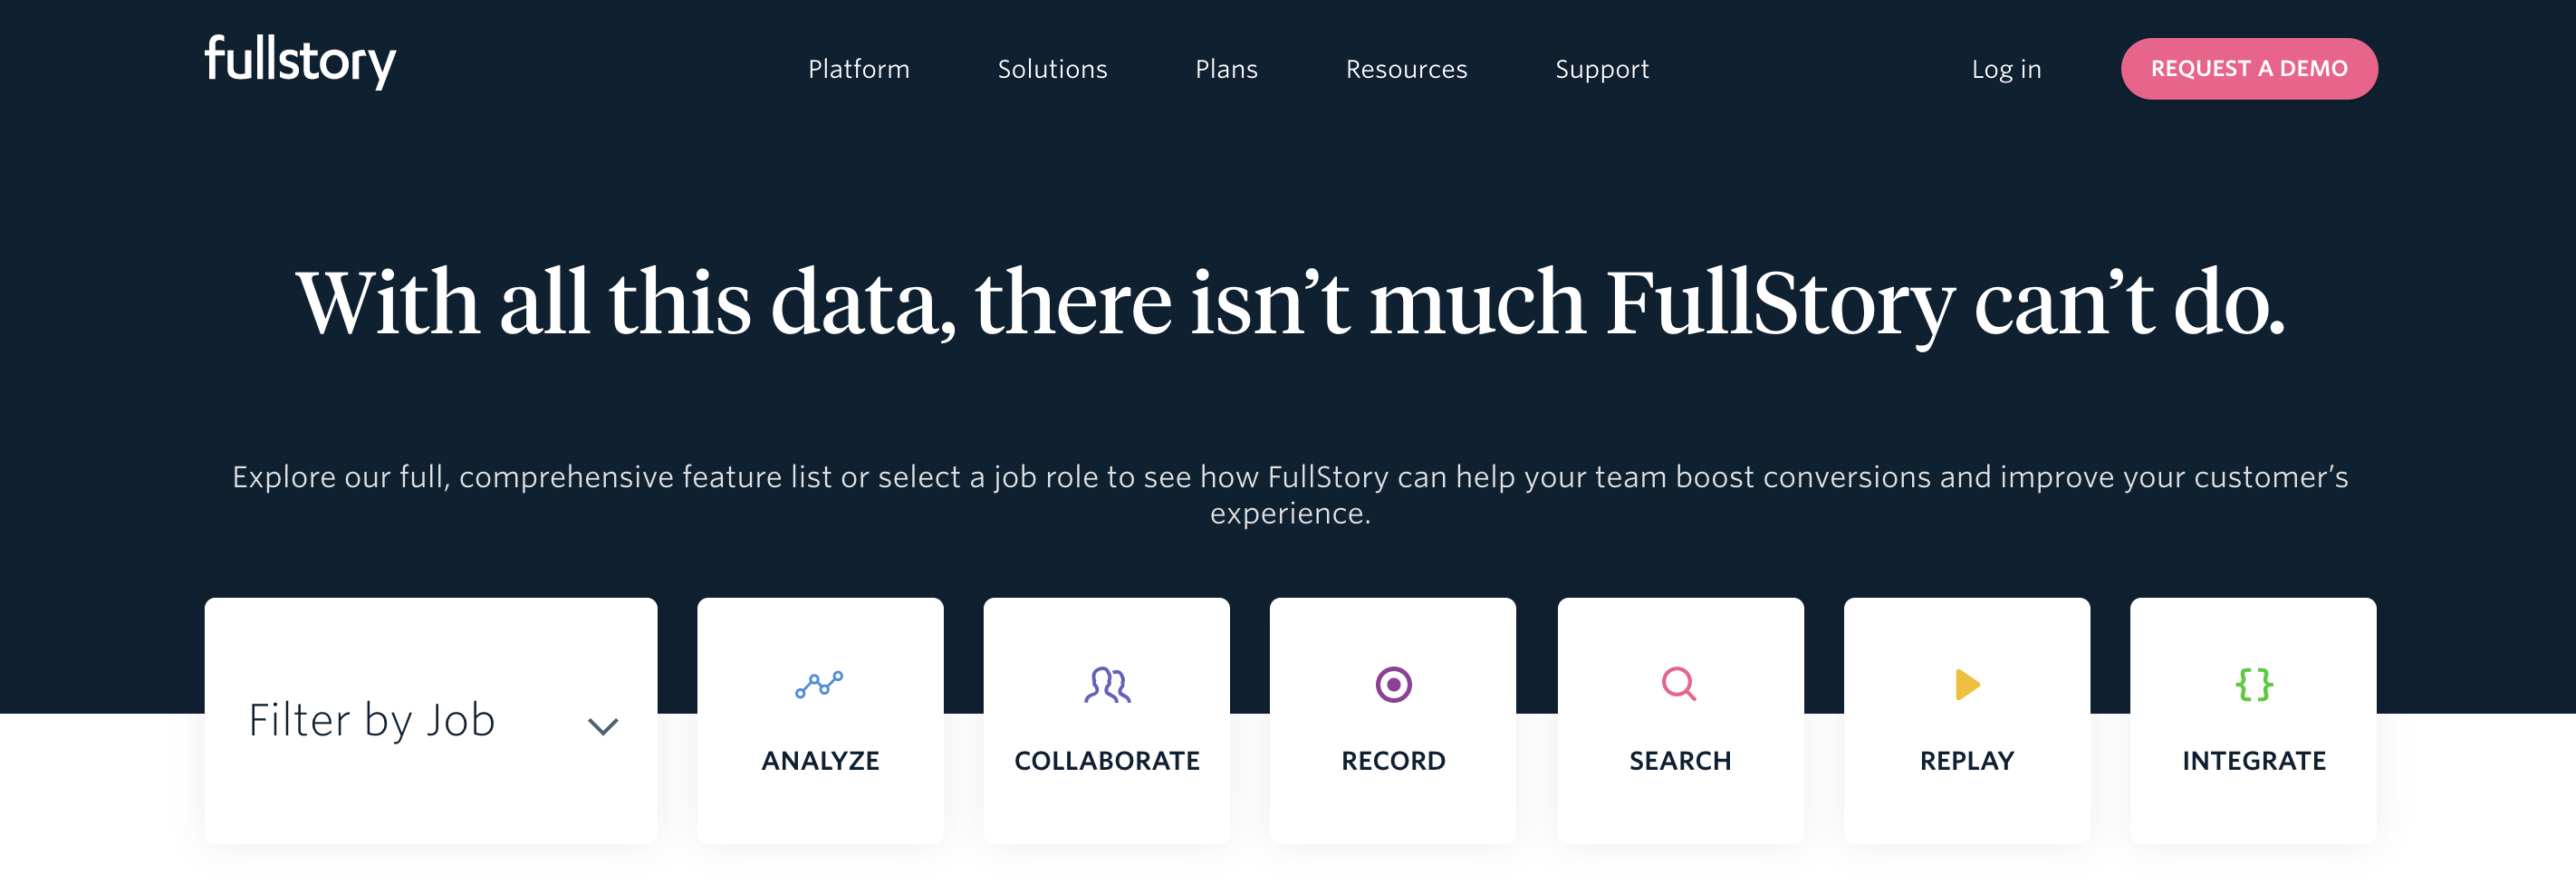 FullStory usability testing tool